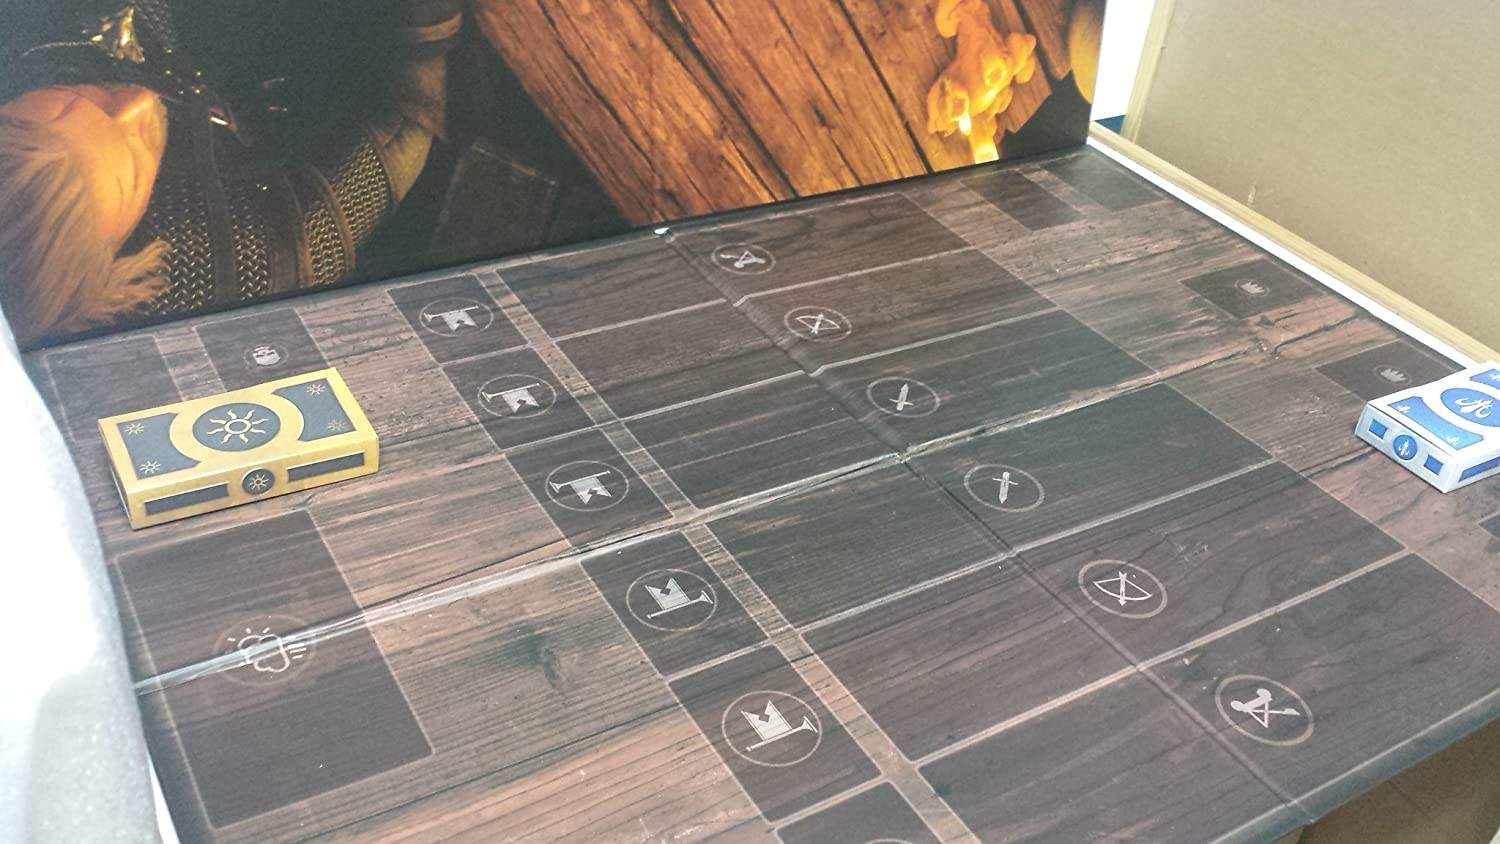 Witcher Gwent Gamingboard - Tablero y Poster de White Orchard.